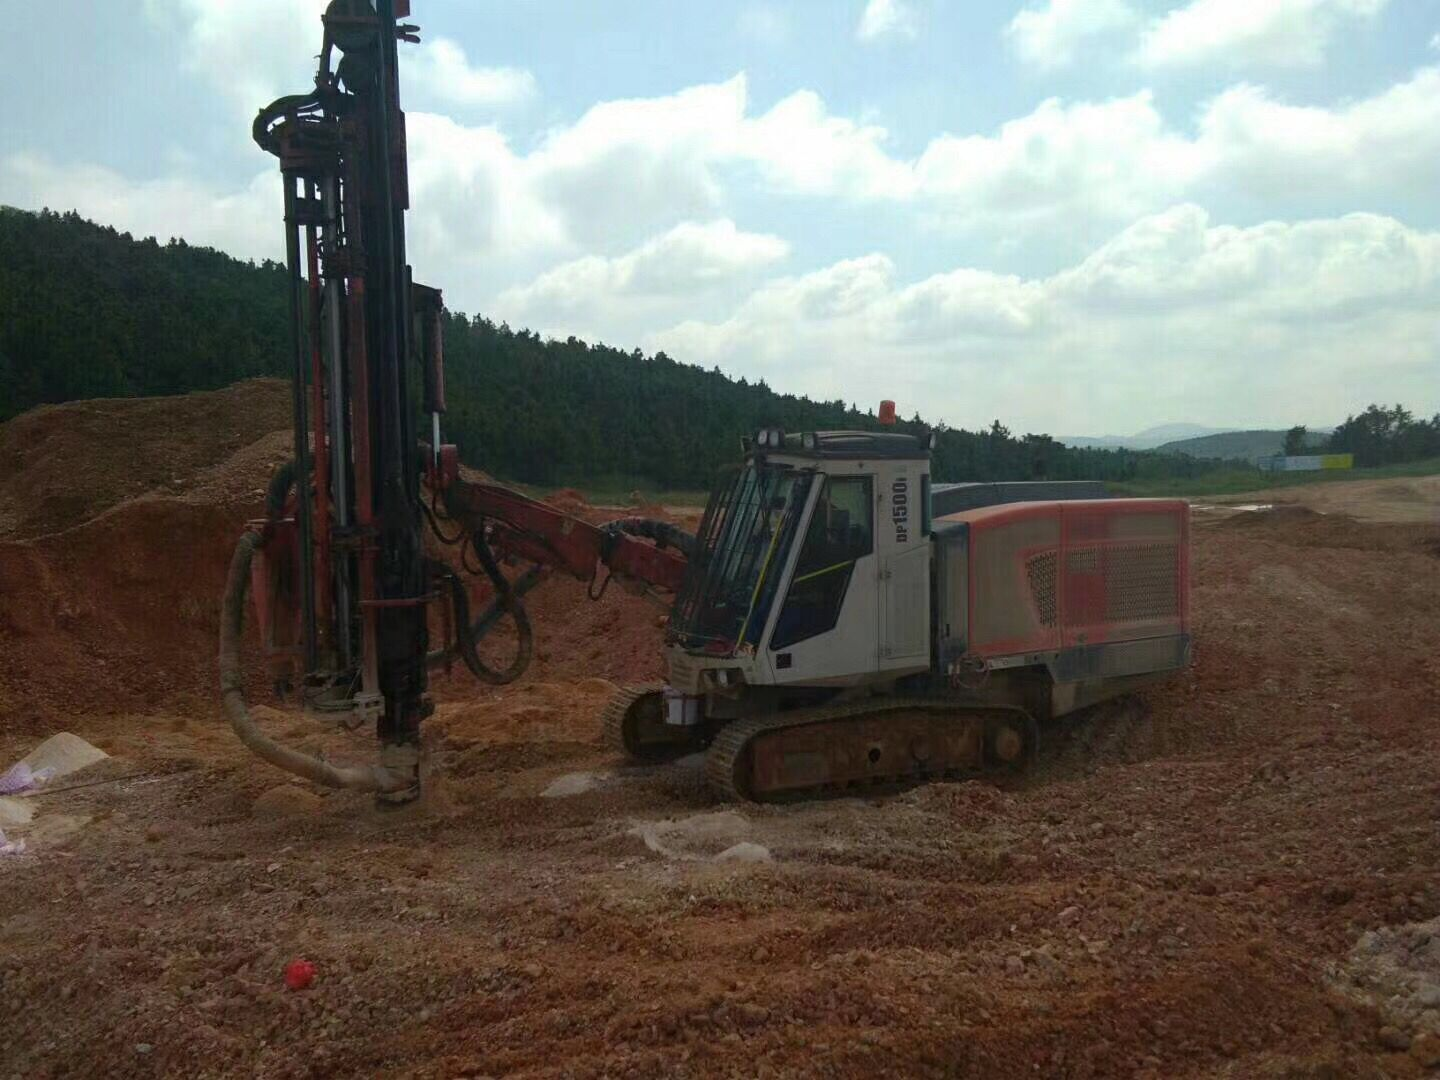 GT60 Rock Drilling Consumables & Equipments matched wtih Tamrock and